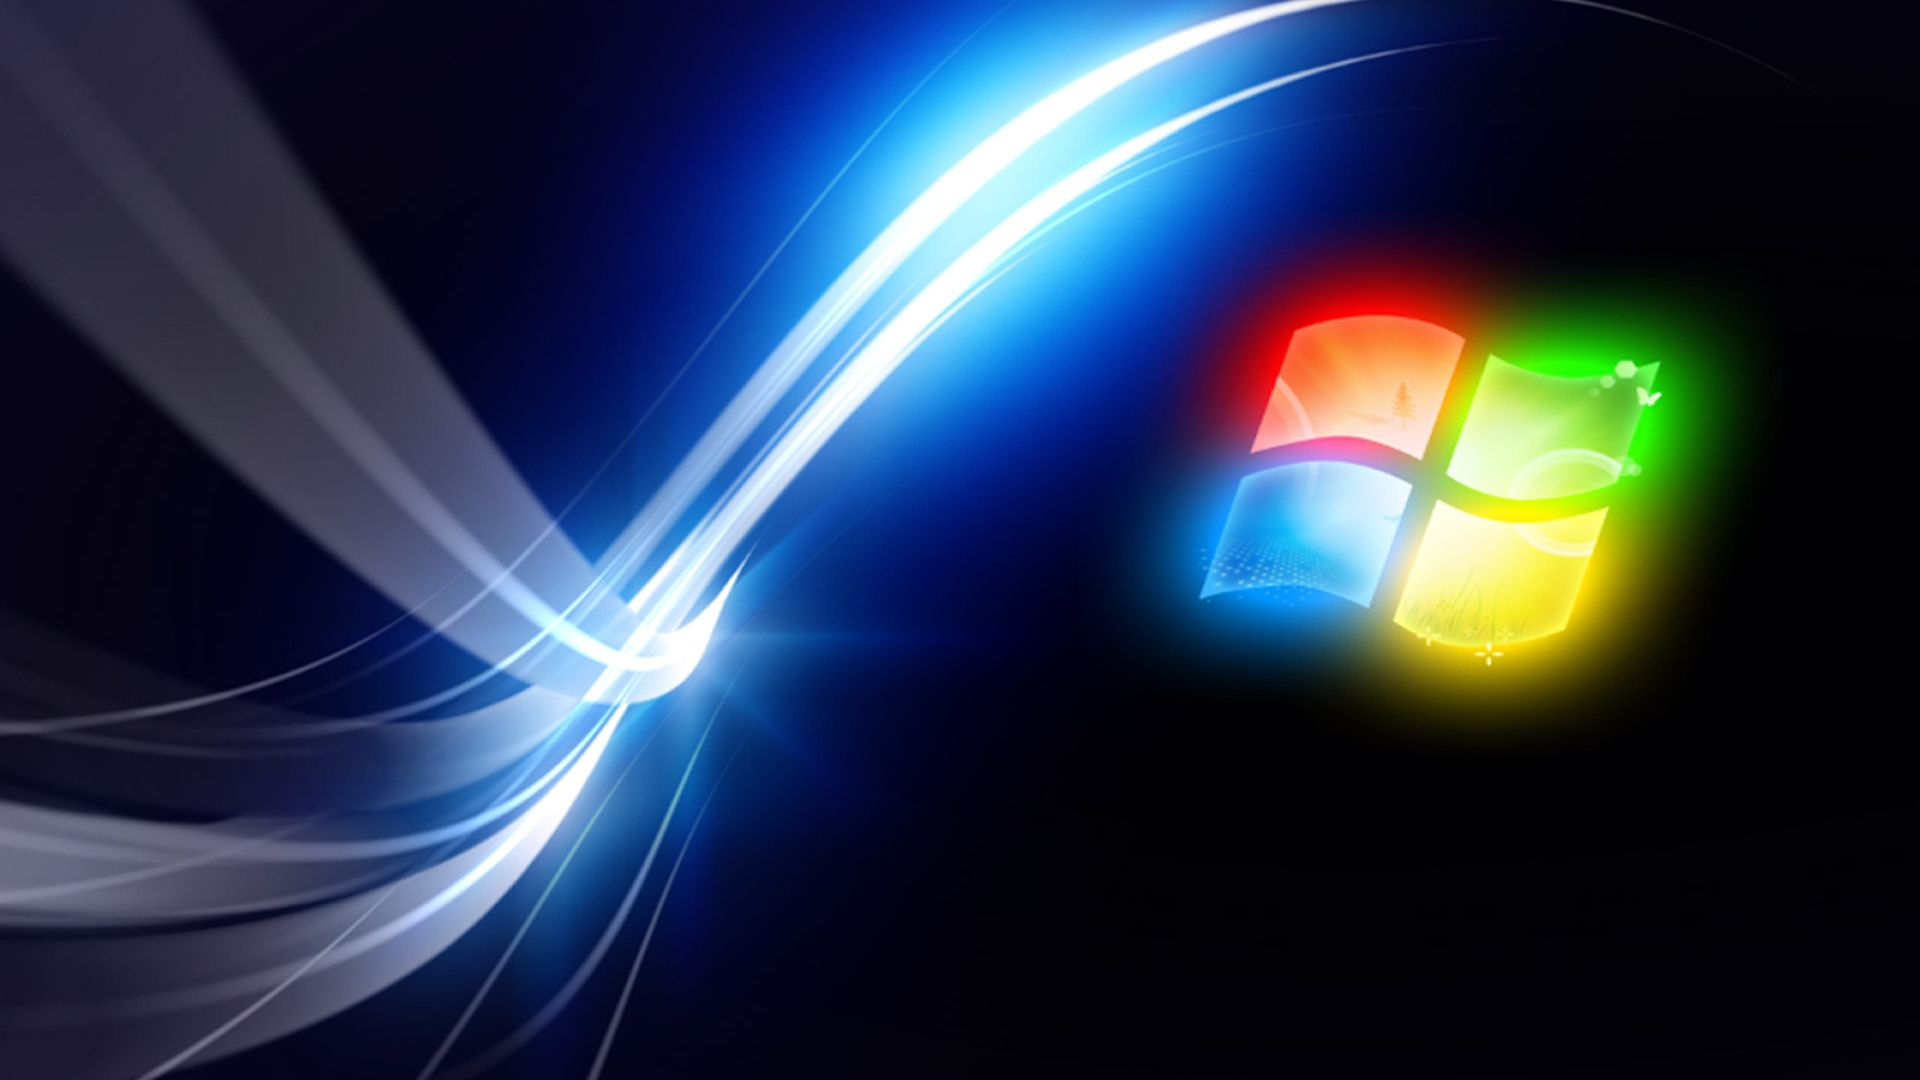 Windows Span background computer